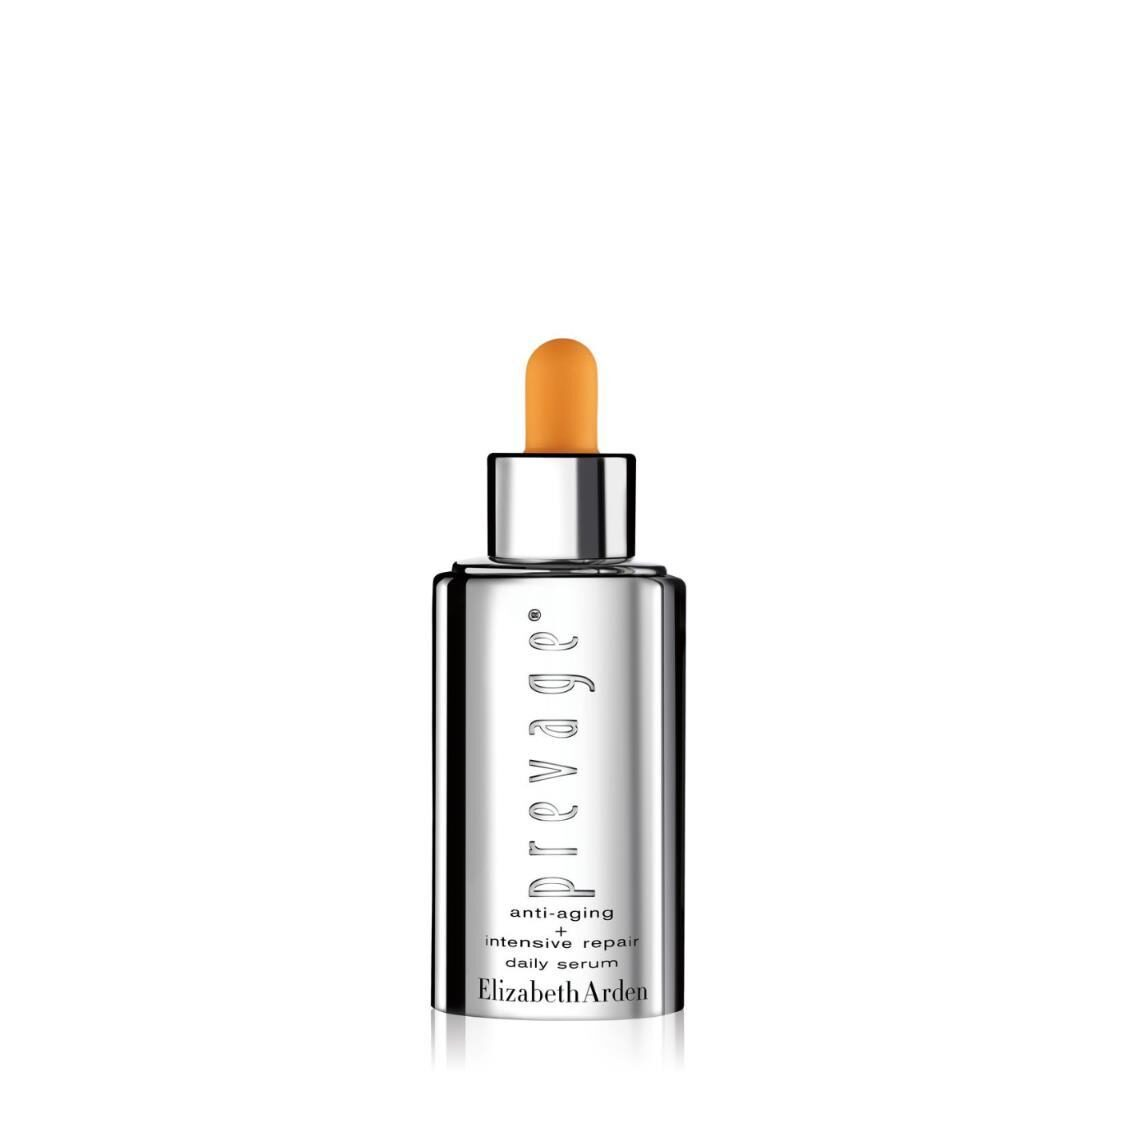 PREVAGE Anti-Aging  Intensive Repair Daily Serum 30ml